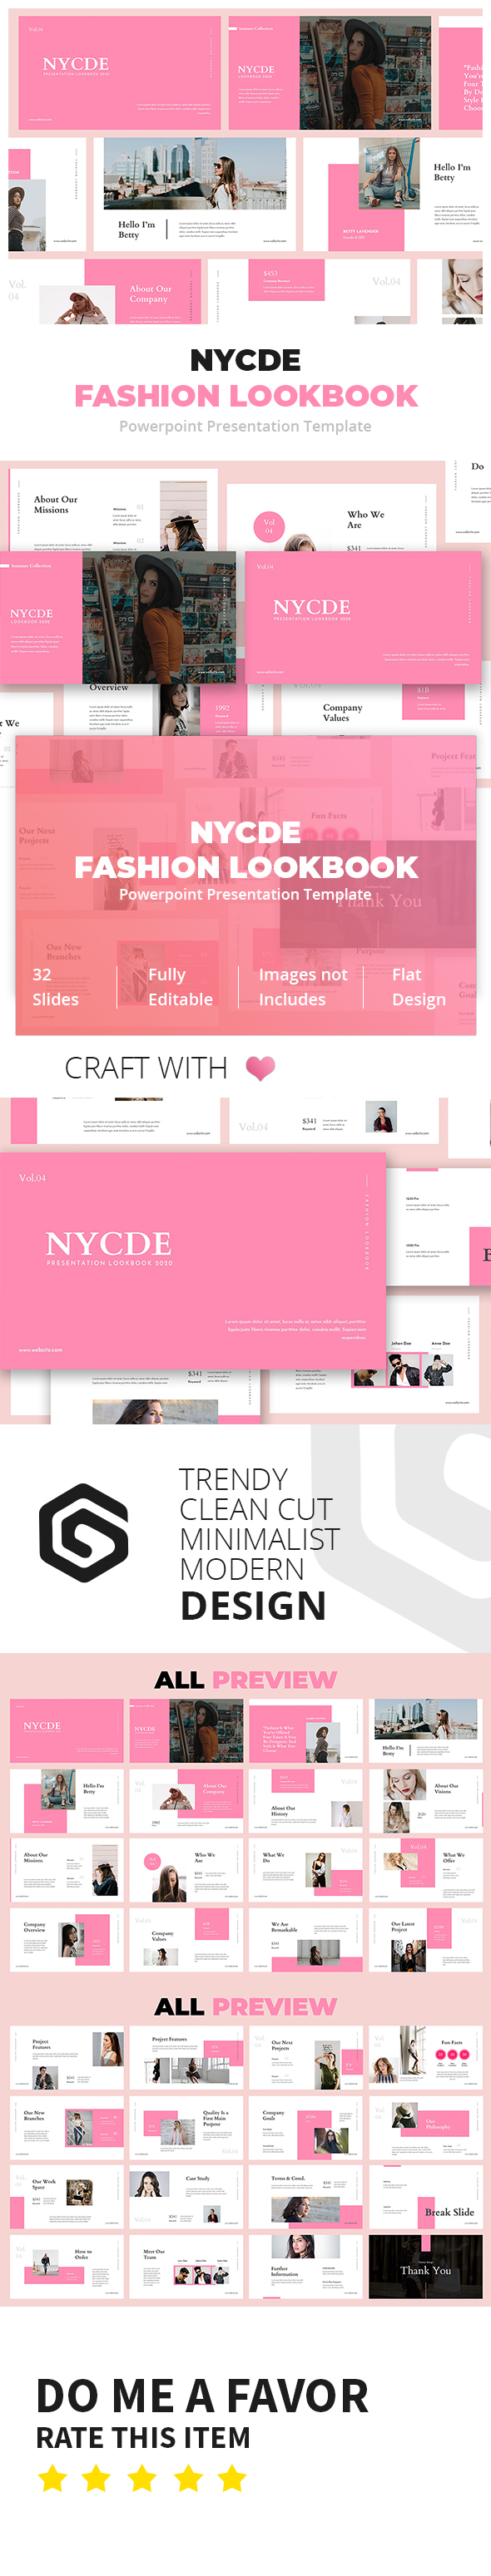 Nycde Fashion Lookbook Powerpoint